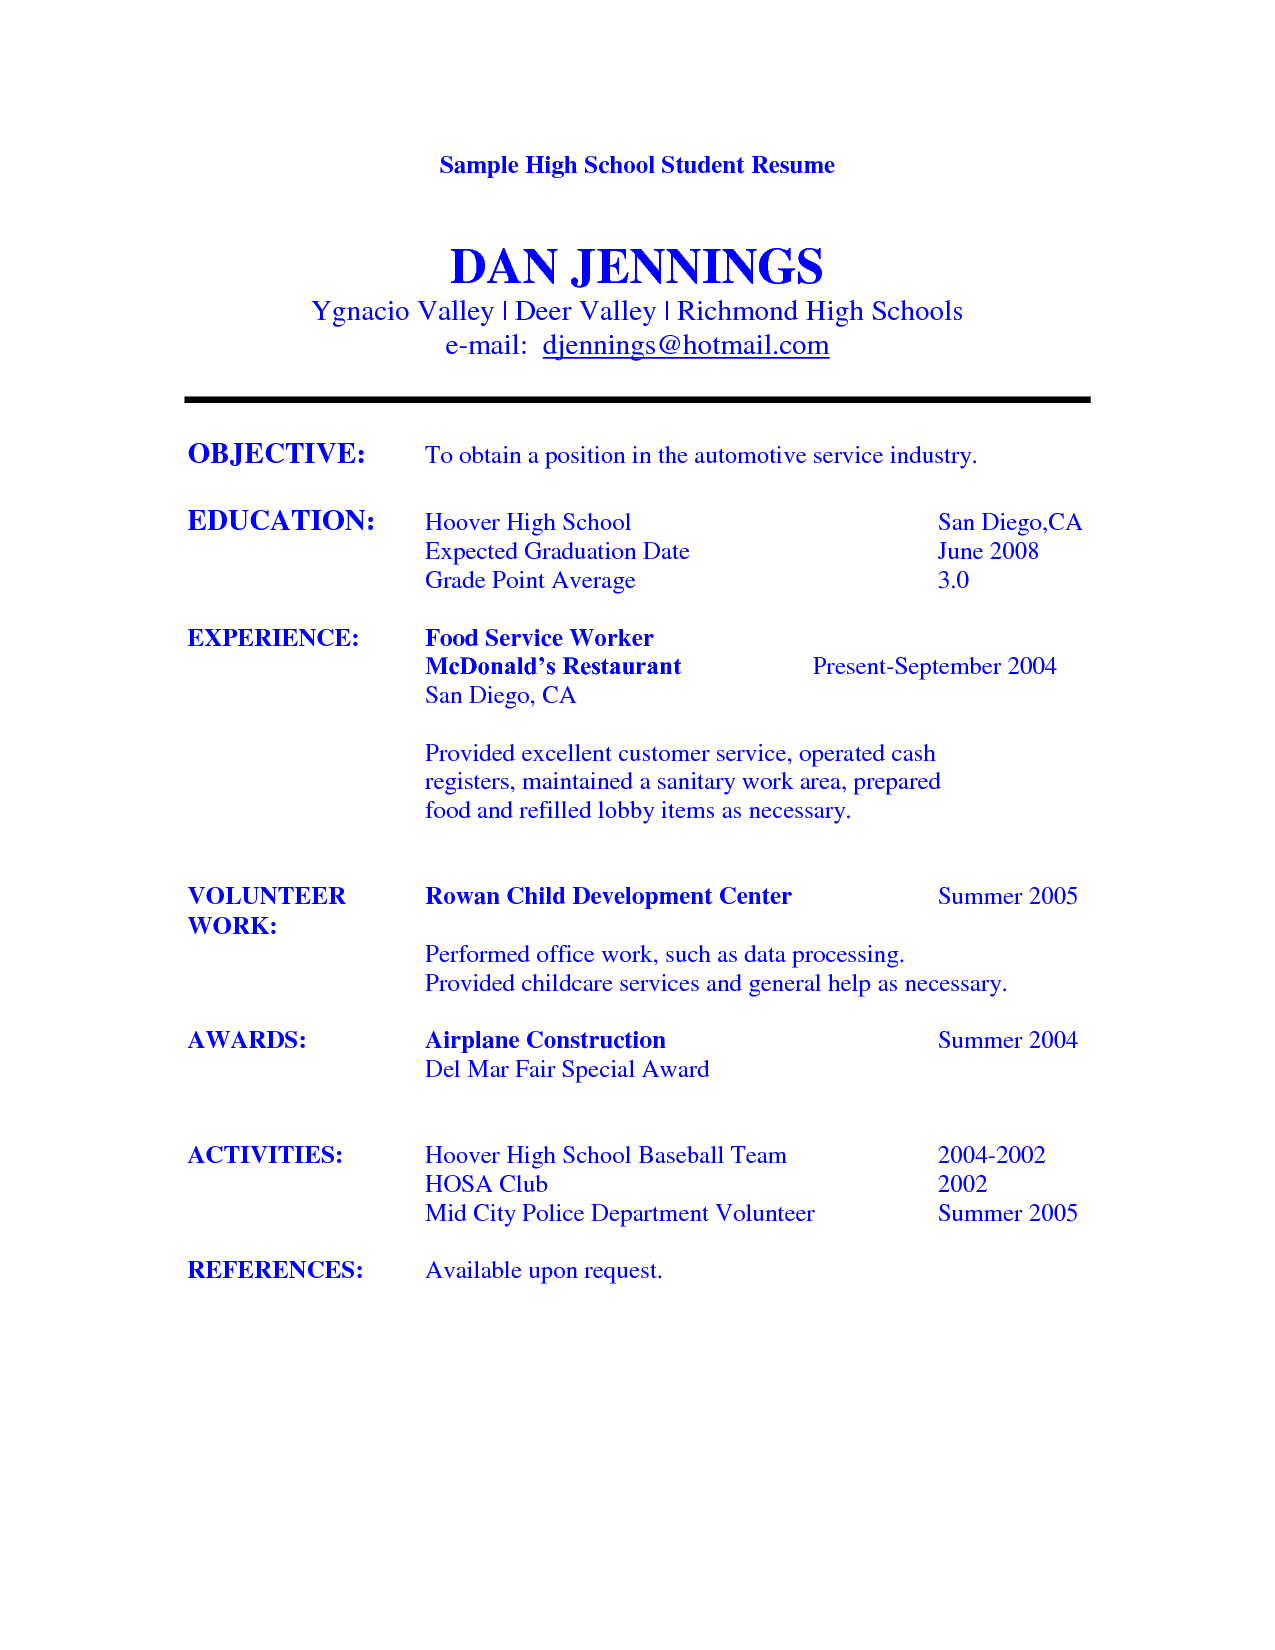 Resumes For High School Students High School Student Resume Best Template Gallery  Httpwww